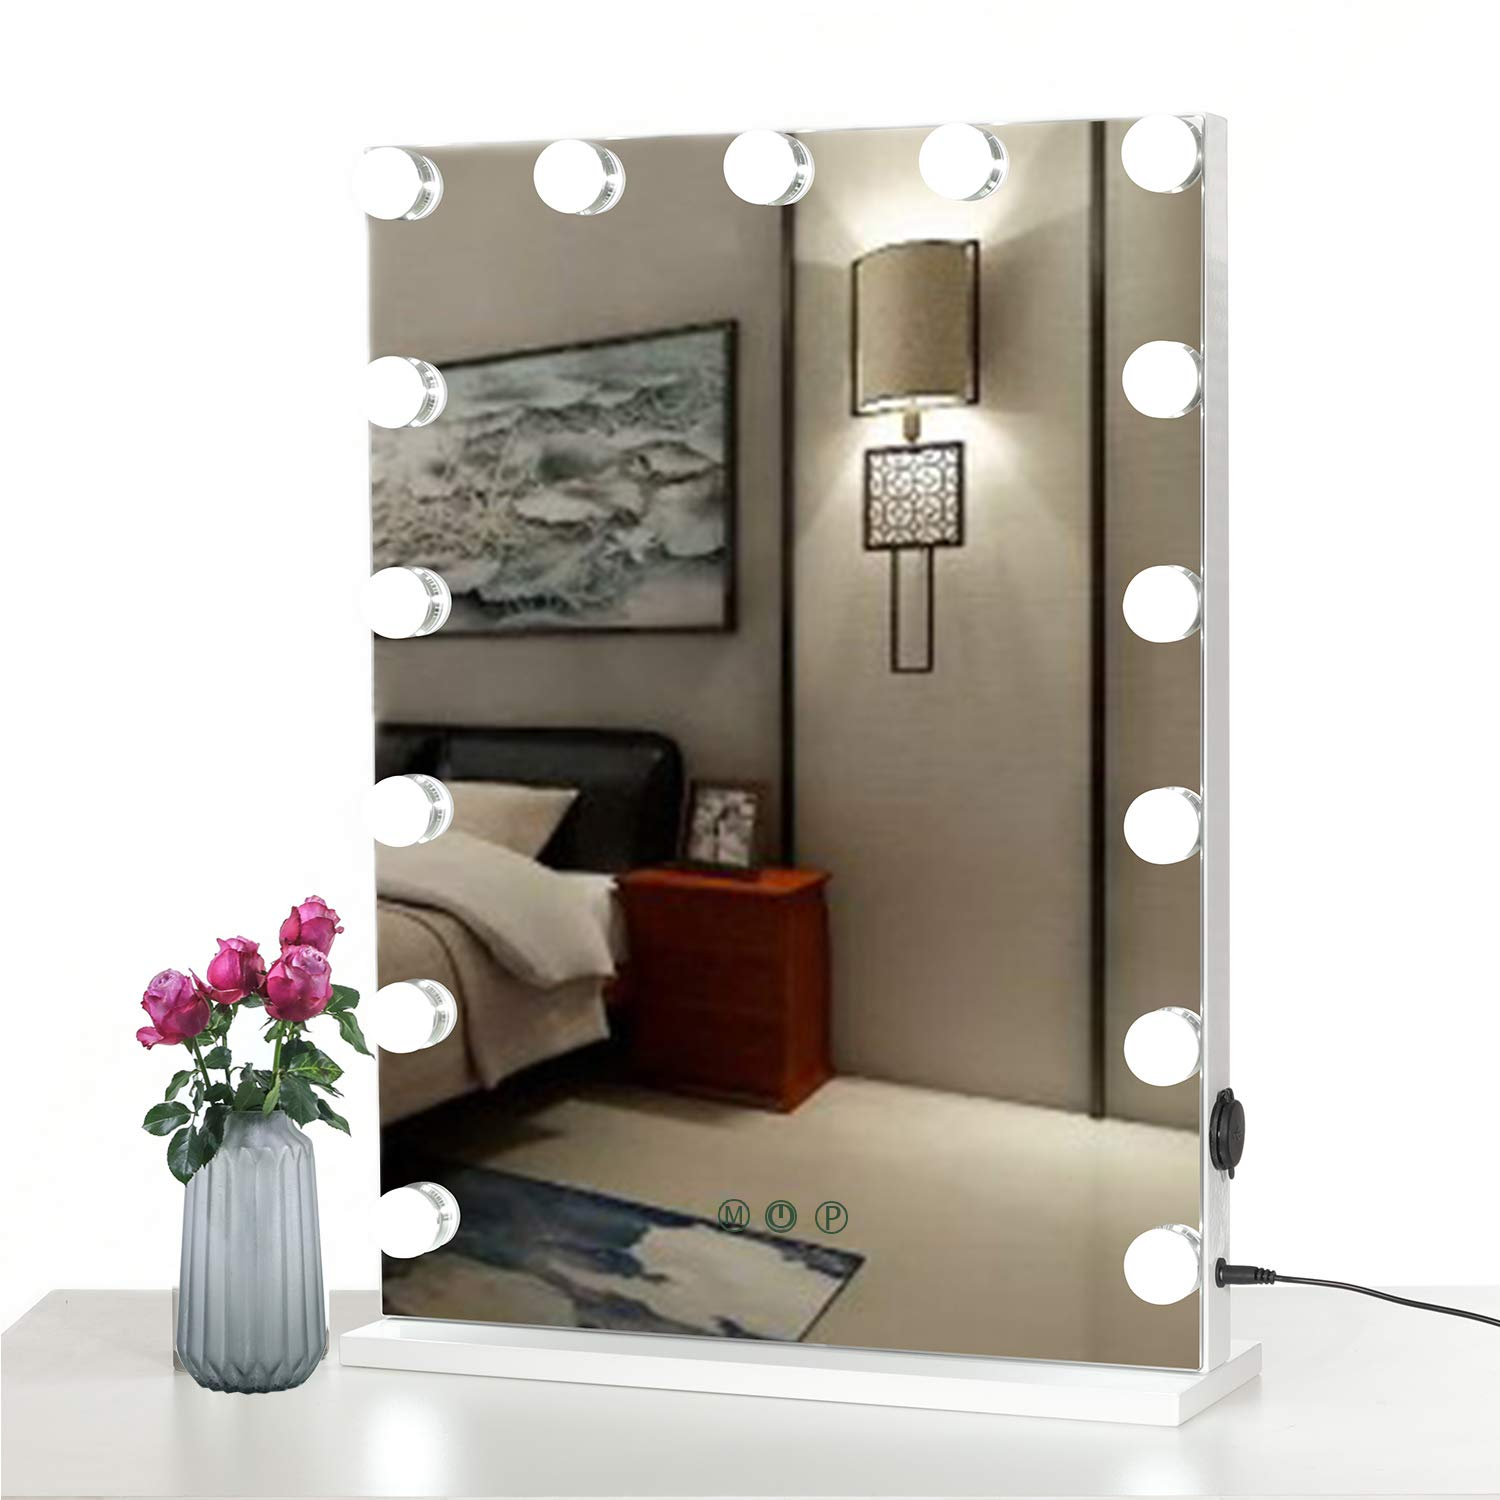 WAYKING Makeup Mirror with lights, Hollywood Vanity Mirror with Touch Screen Dimmer, USB Charging Port, 3 Color Lighting Modes, White (L18.9 X H22.8 inch) ... (White-2nd Generation)